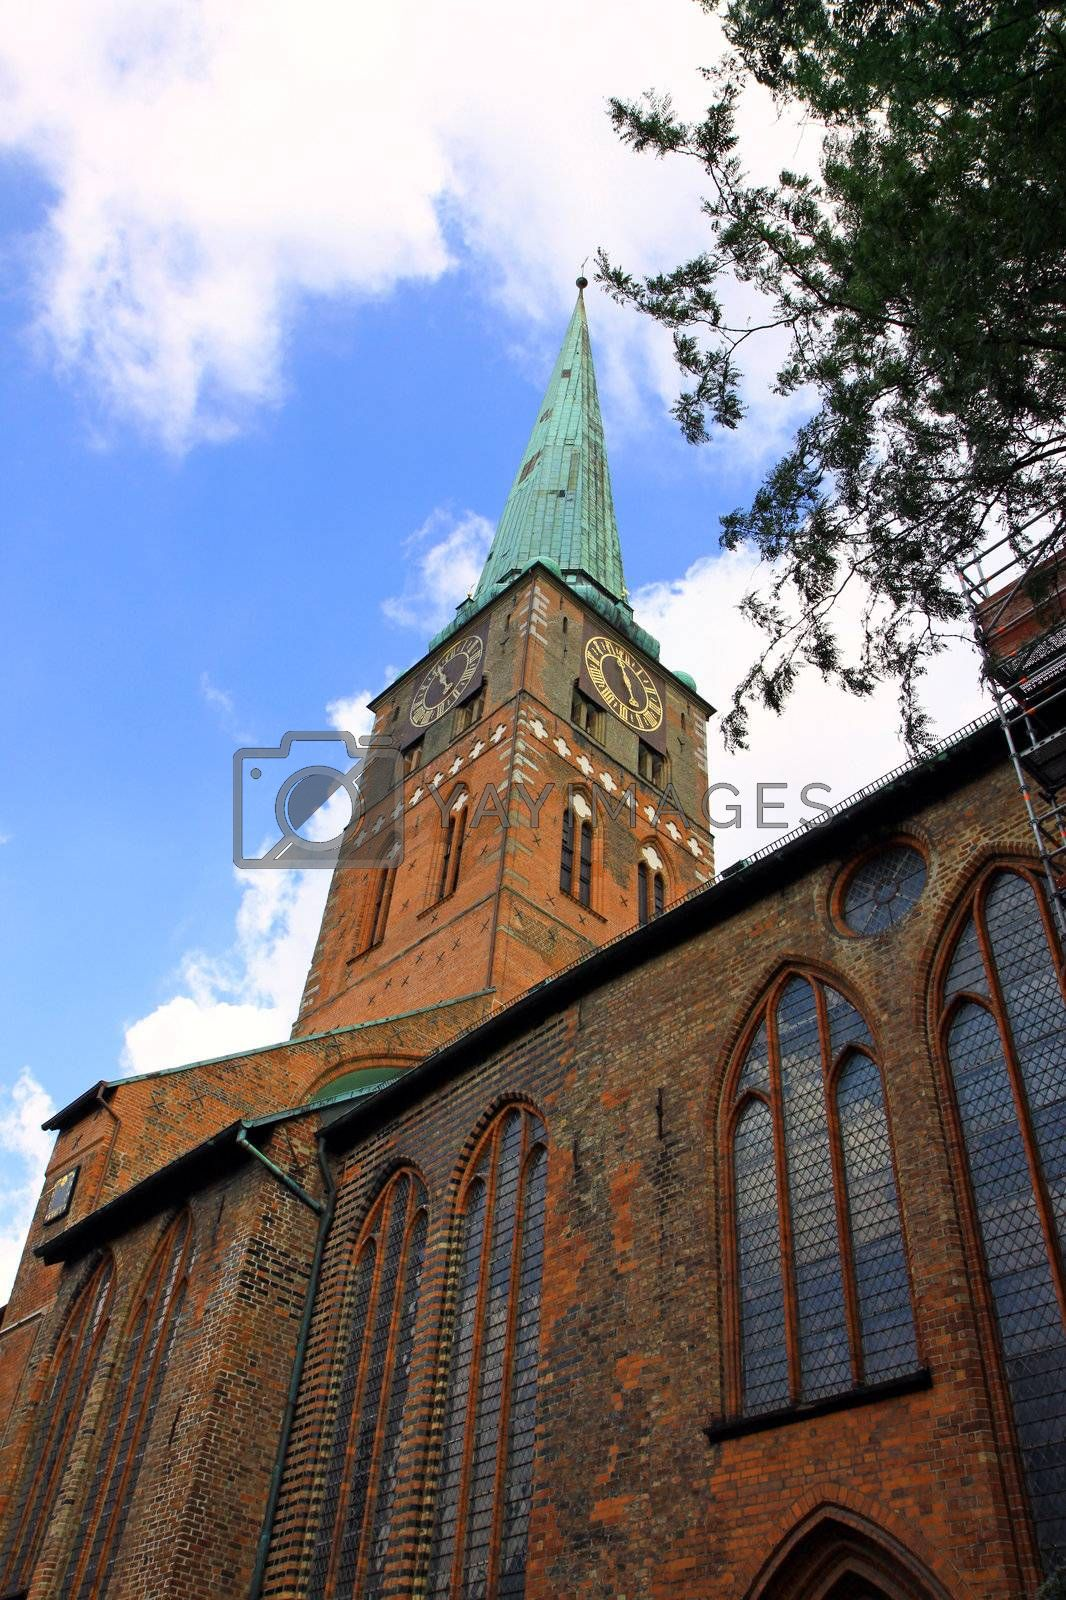 Low angle view to St. Mary's Church in Lubeck, Germany